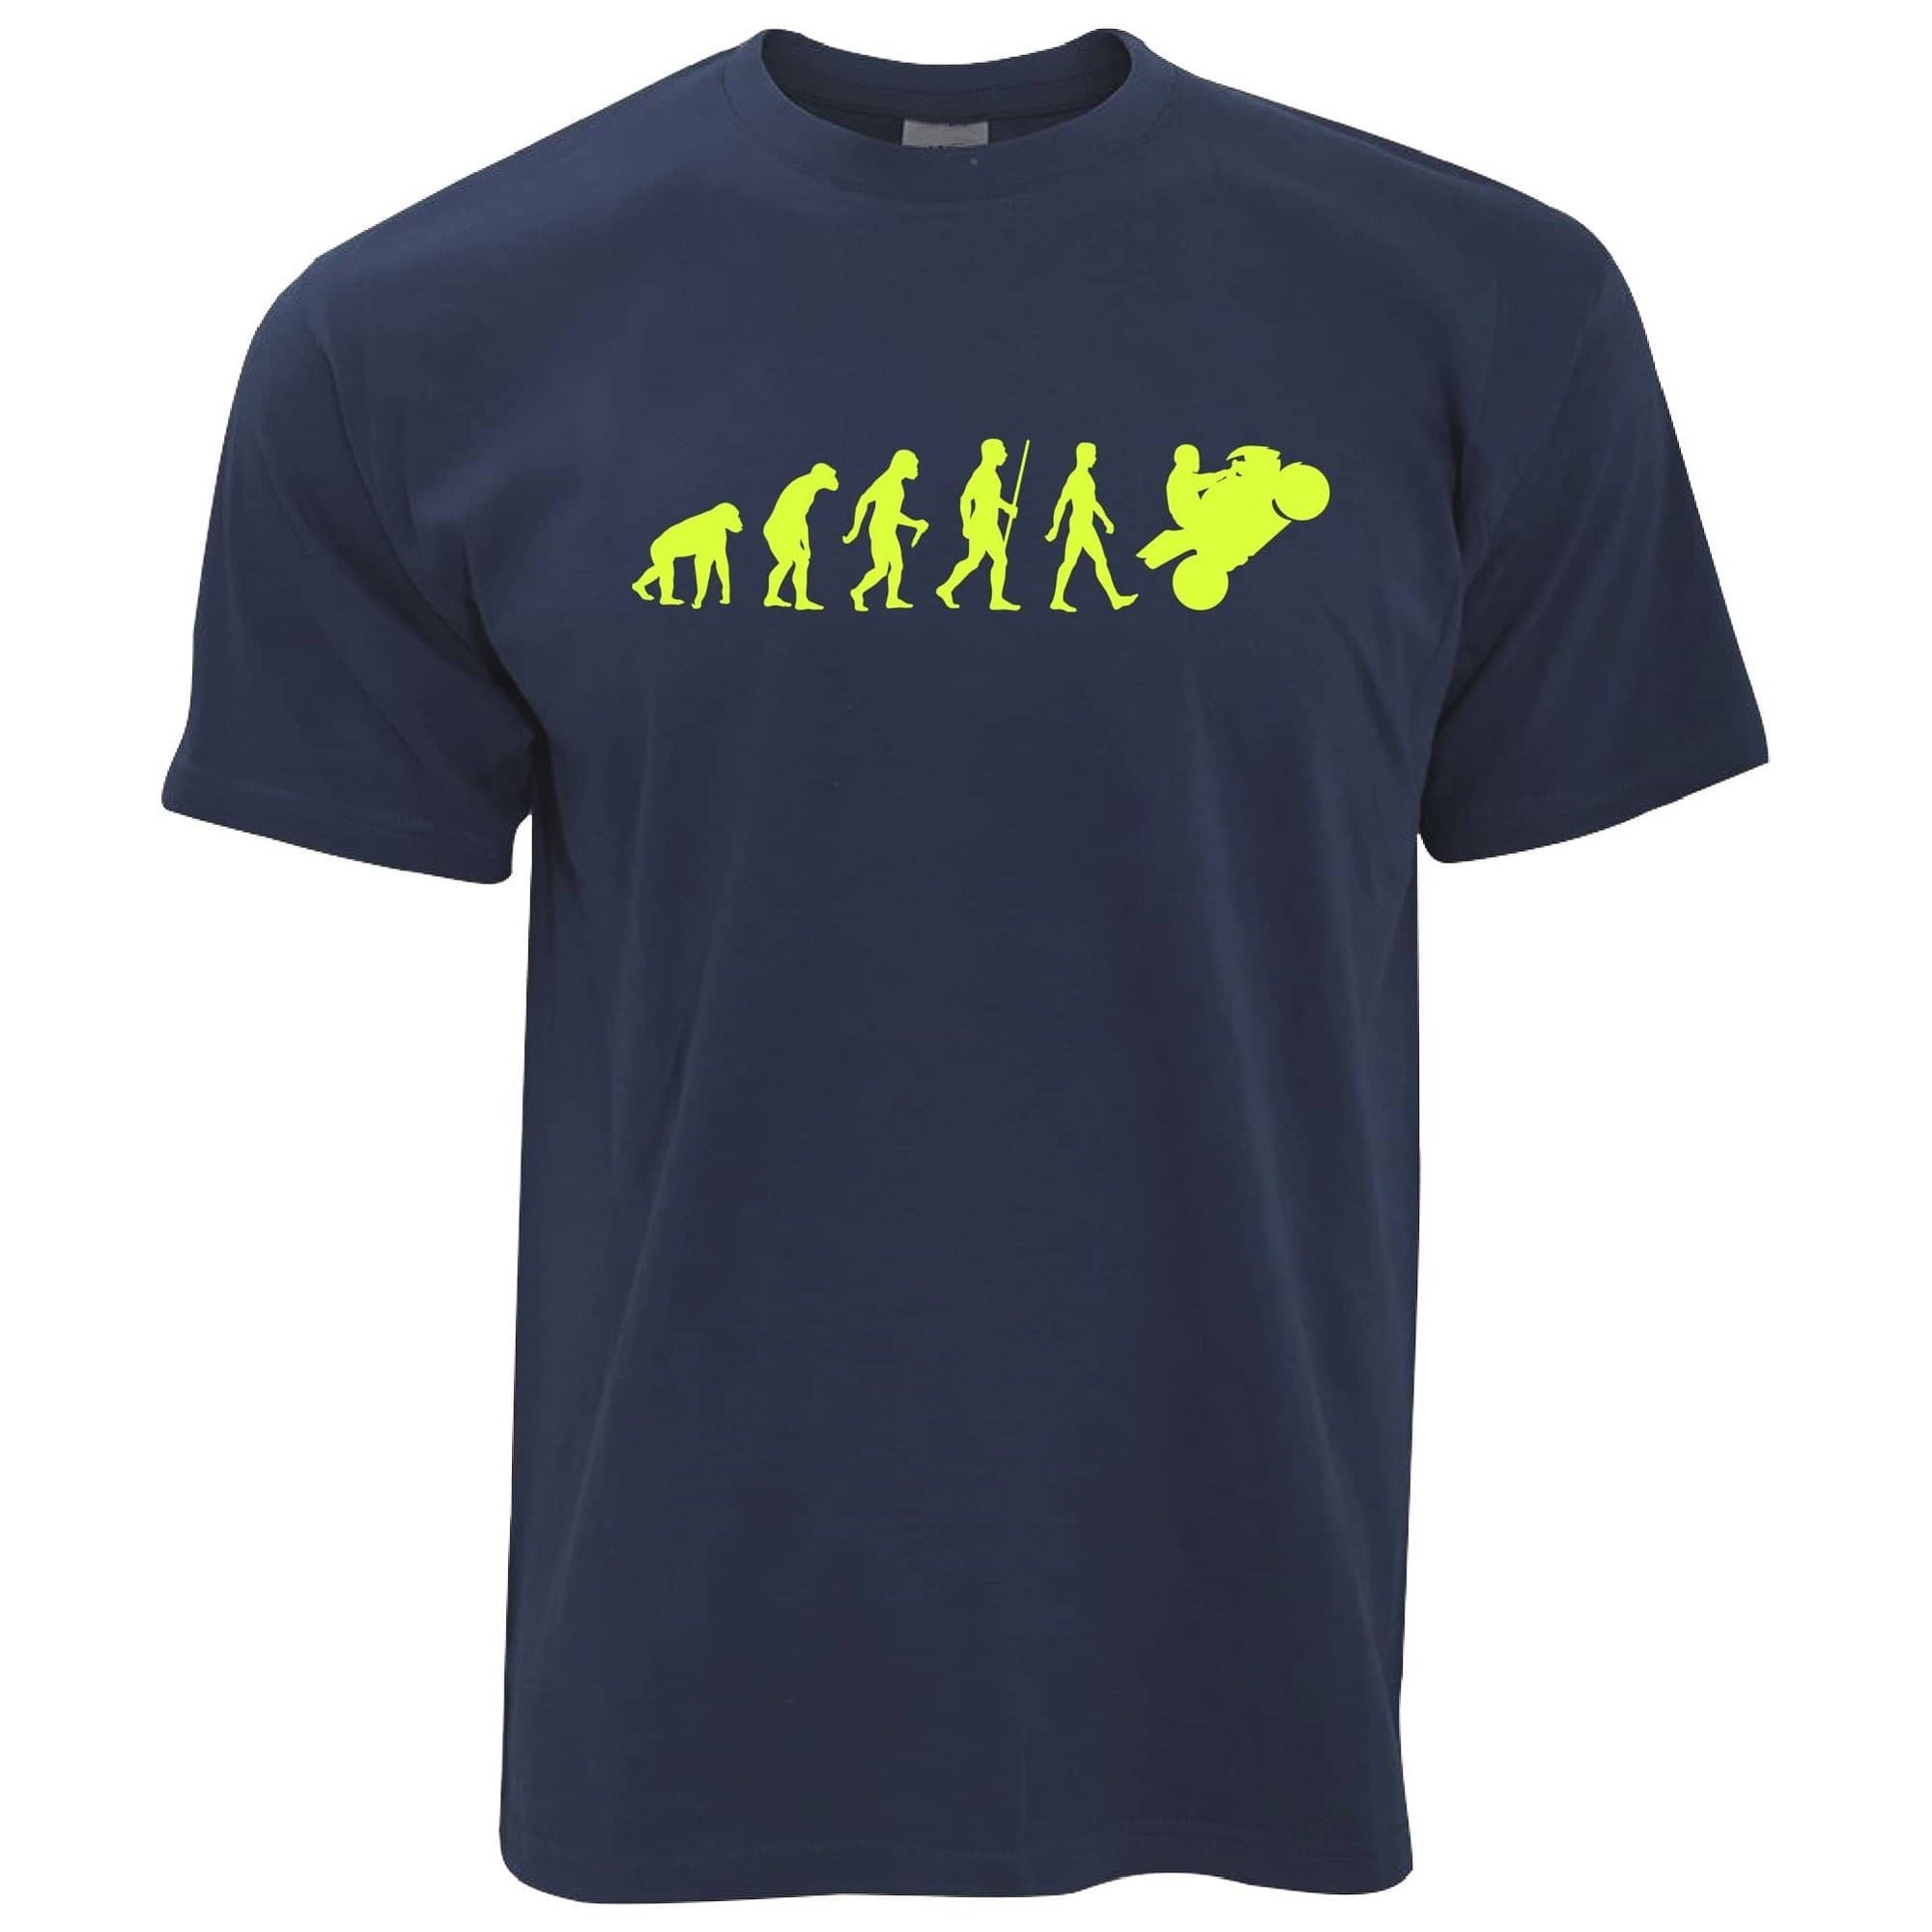 Biking T Shirt Evolution Of A Motorbike Neon Yellow